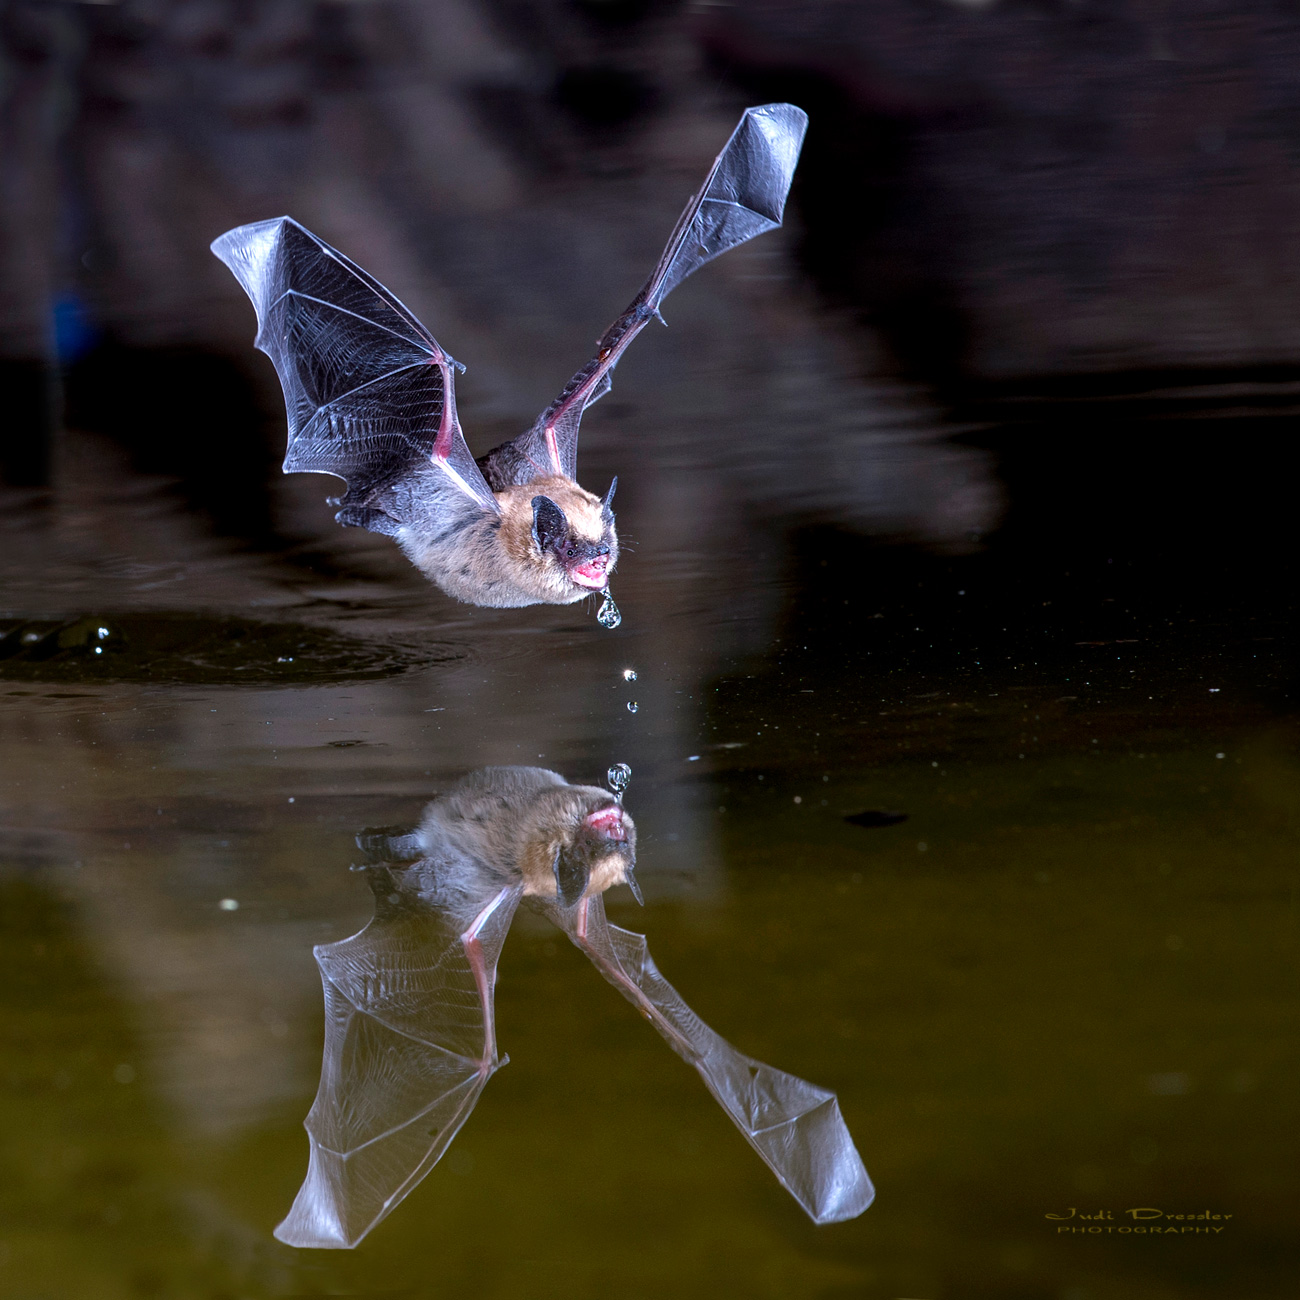 Bat and Reflection